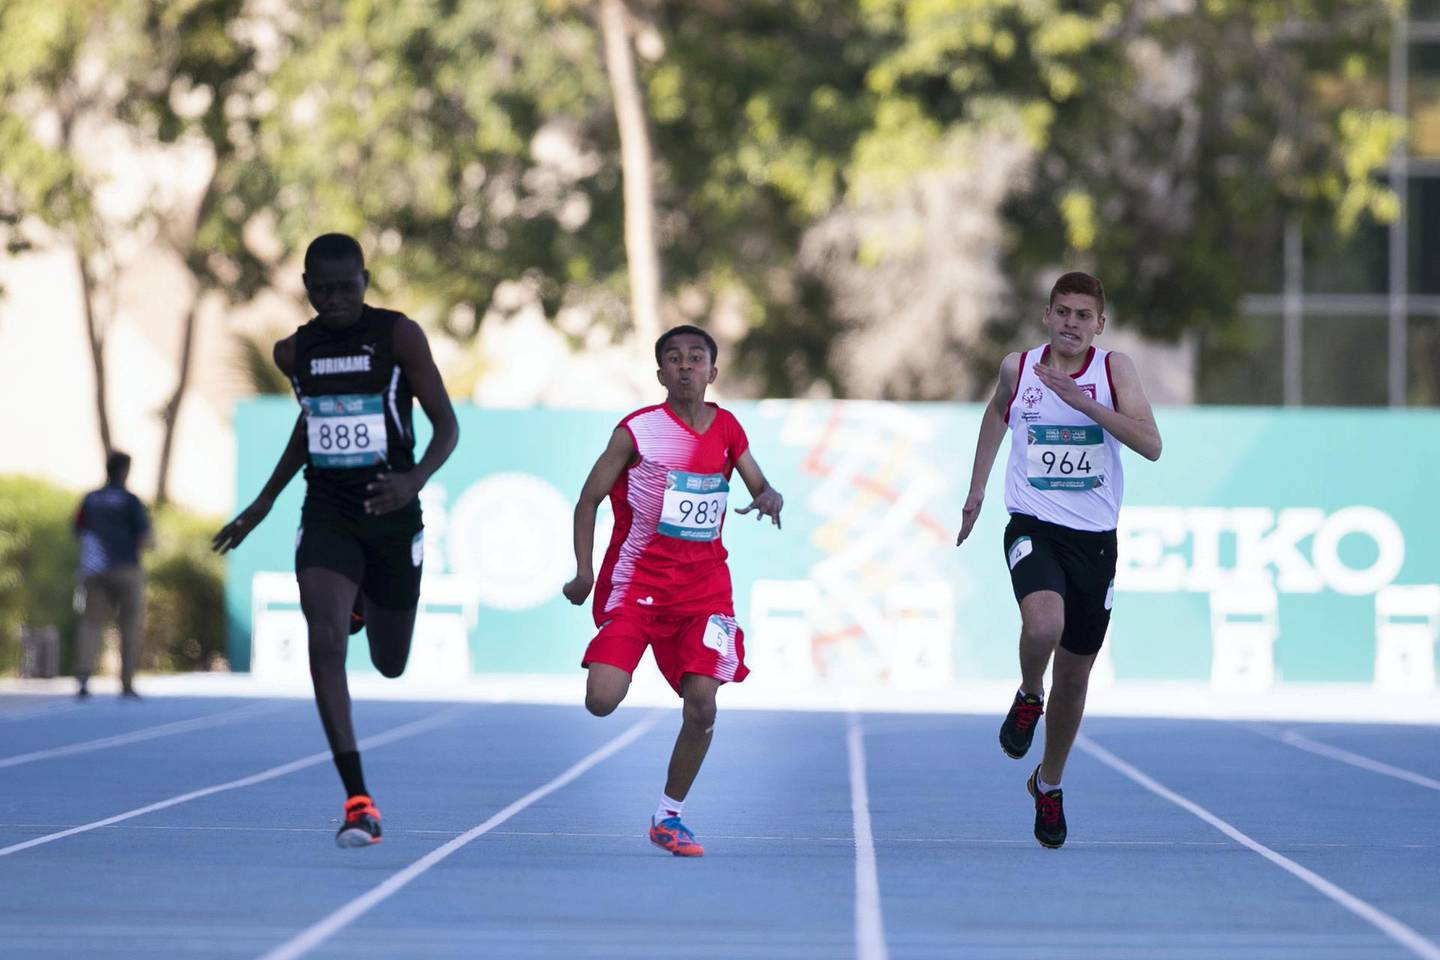 DUBAI, UNITED ARAB EMIRATES - March 19 2019.14 yo Emirati athlete ALI ALMESMARI places 4th at Special Olympics World Games athletics 100M race in Dubai Police Academy Stadium. (Photo by Reem Mohammed/The National)Reporter: Section:  NA